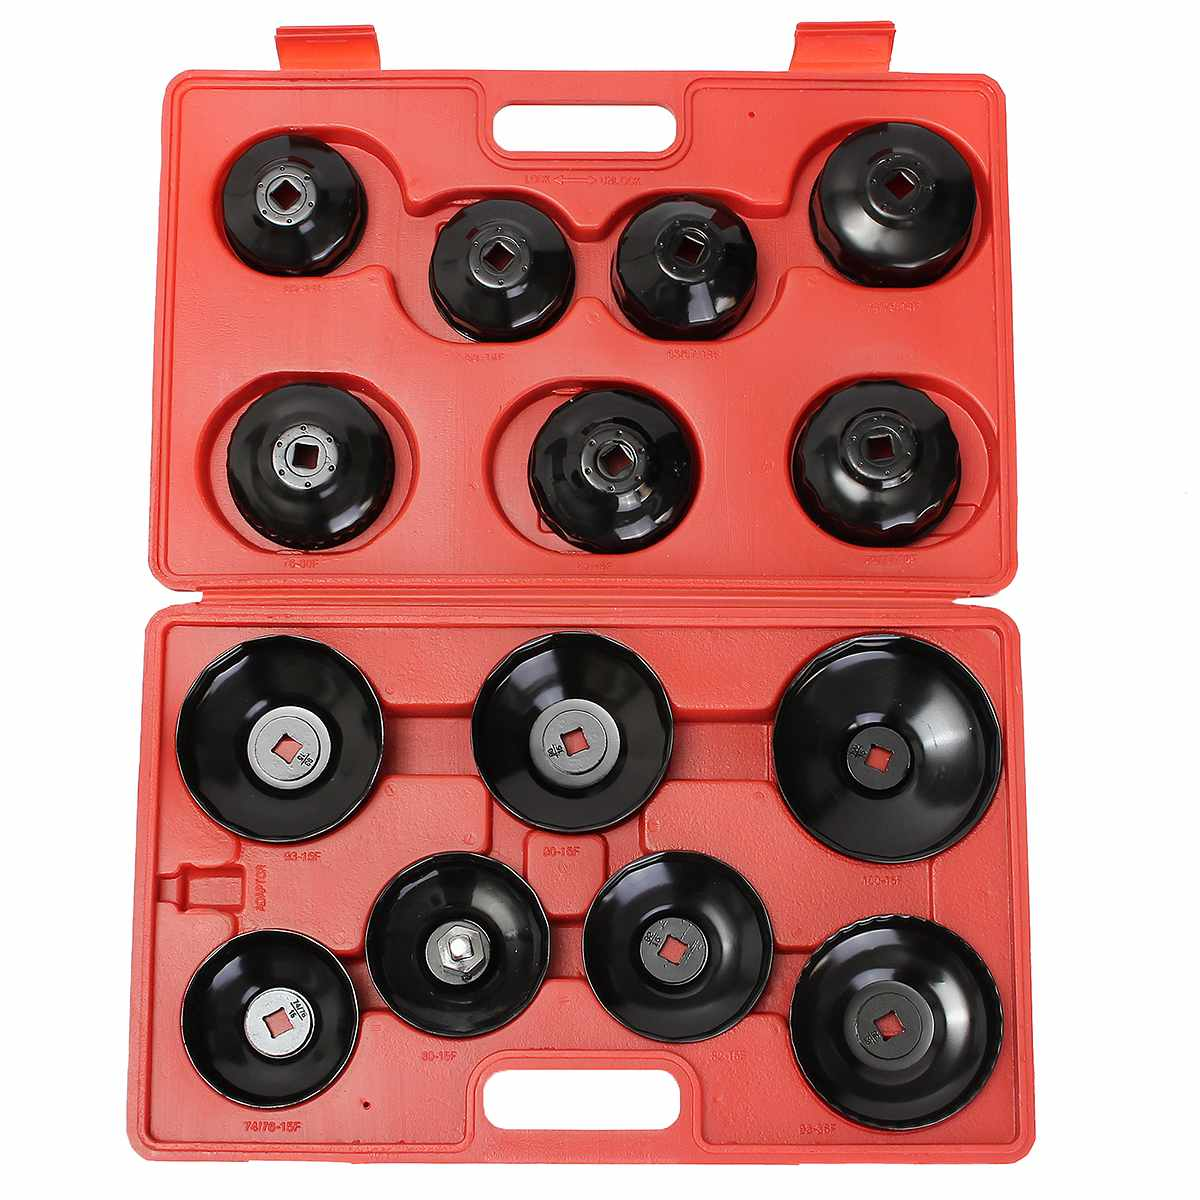 Doersupp 14 PCS Universals Car Oil Filter Wrench Socket Cap Auto Removing Tool Filter Housing Caps 4 Cylinder Non-Slip Hand Tool